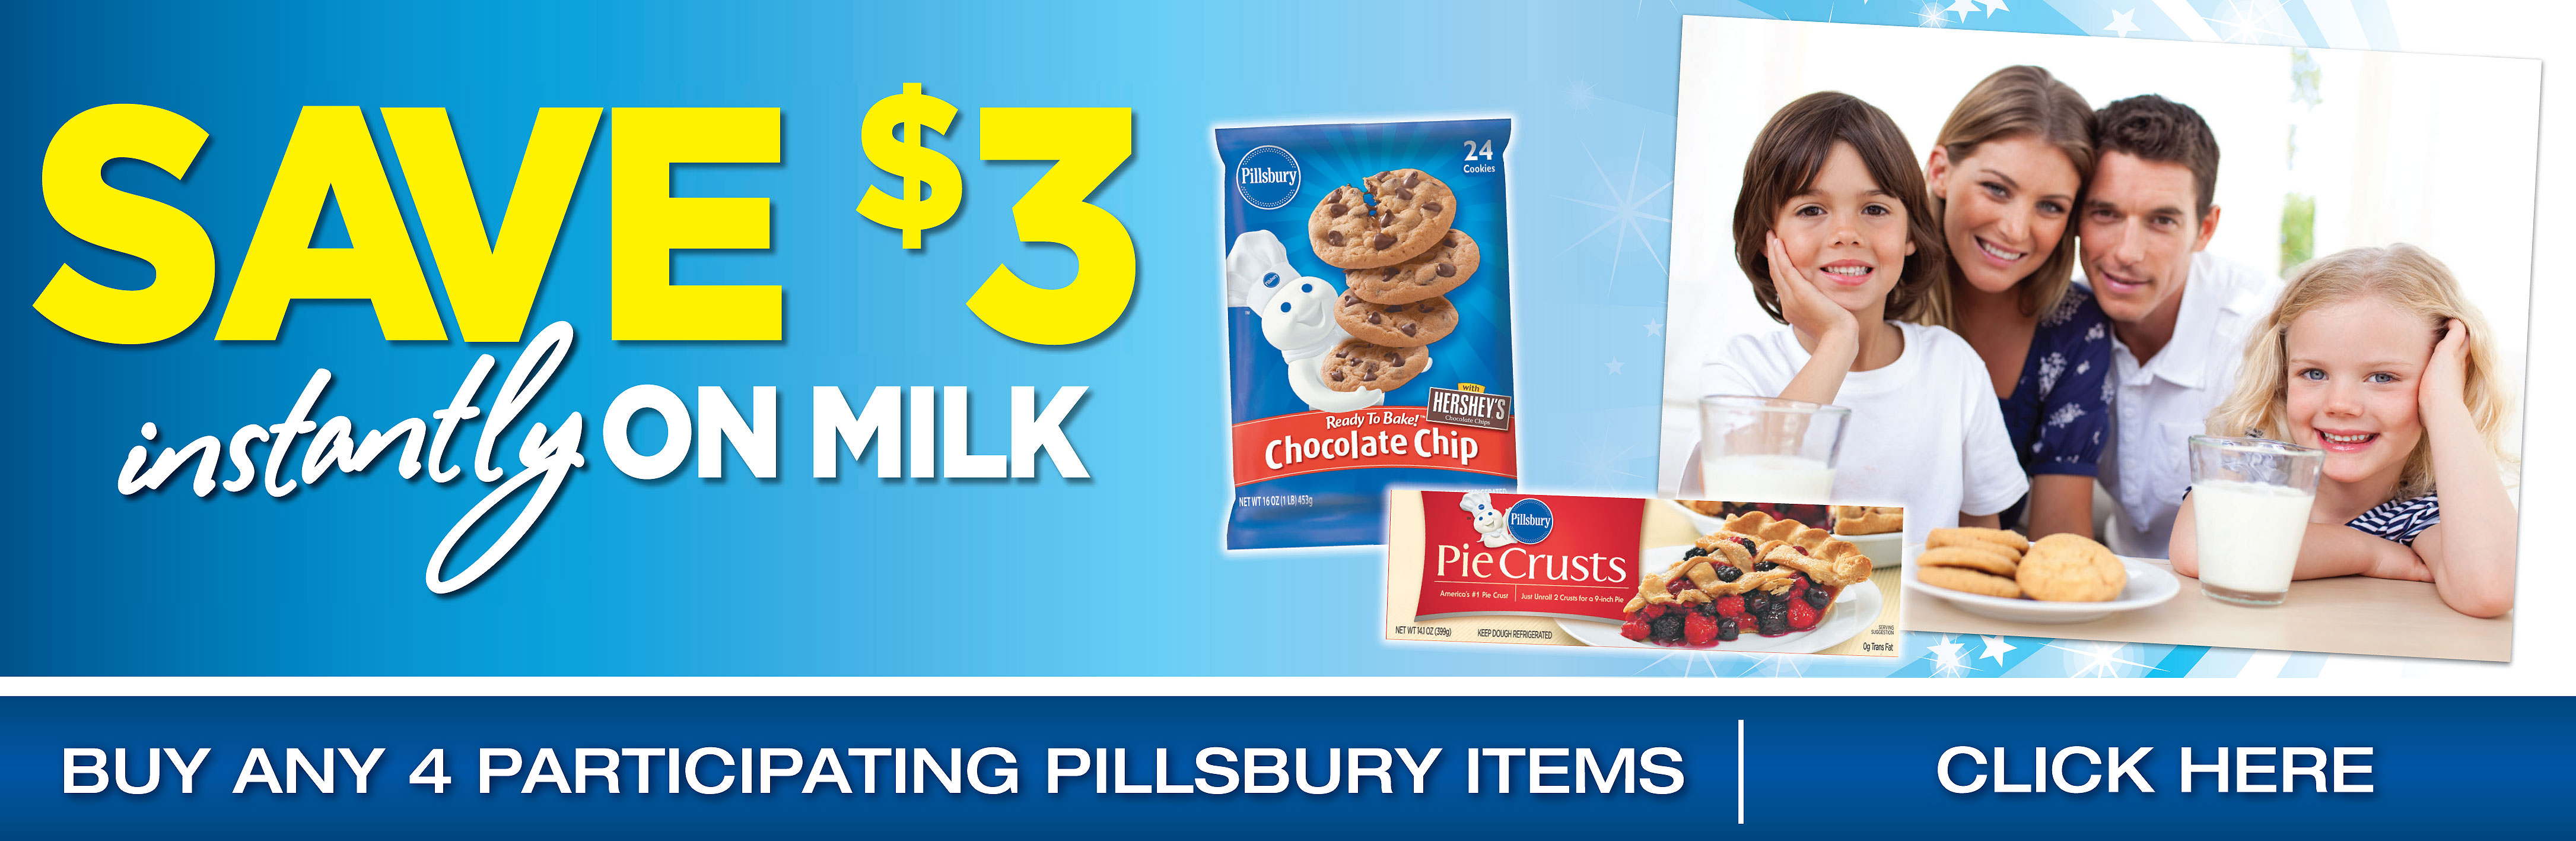 Save $3 On Milk Instantly